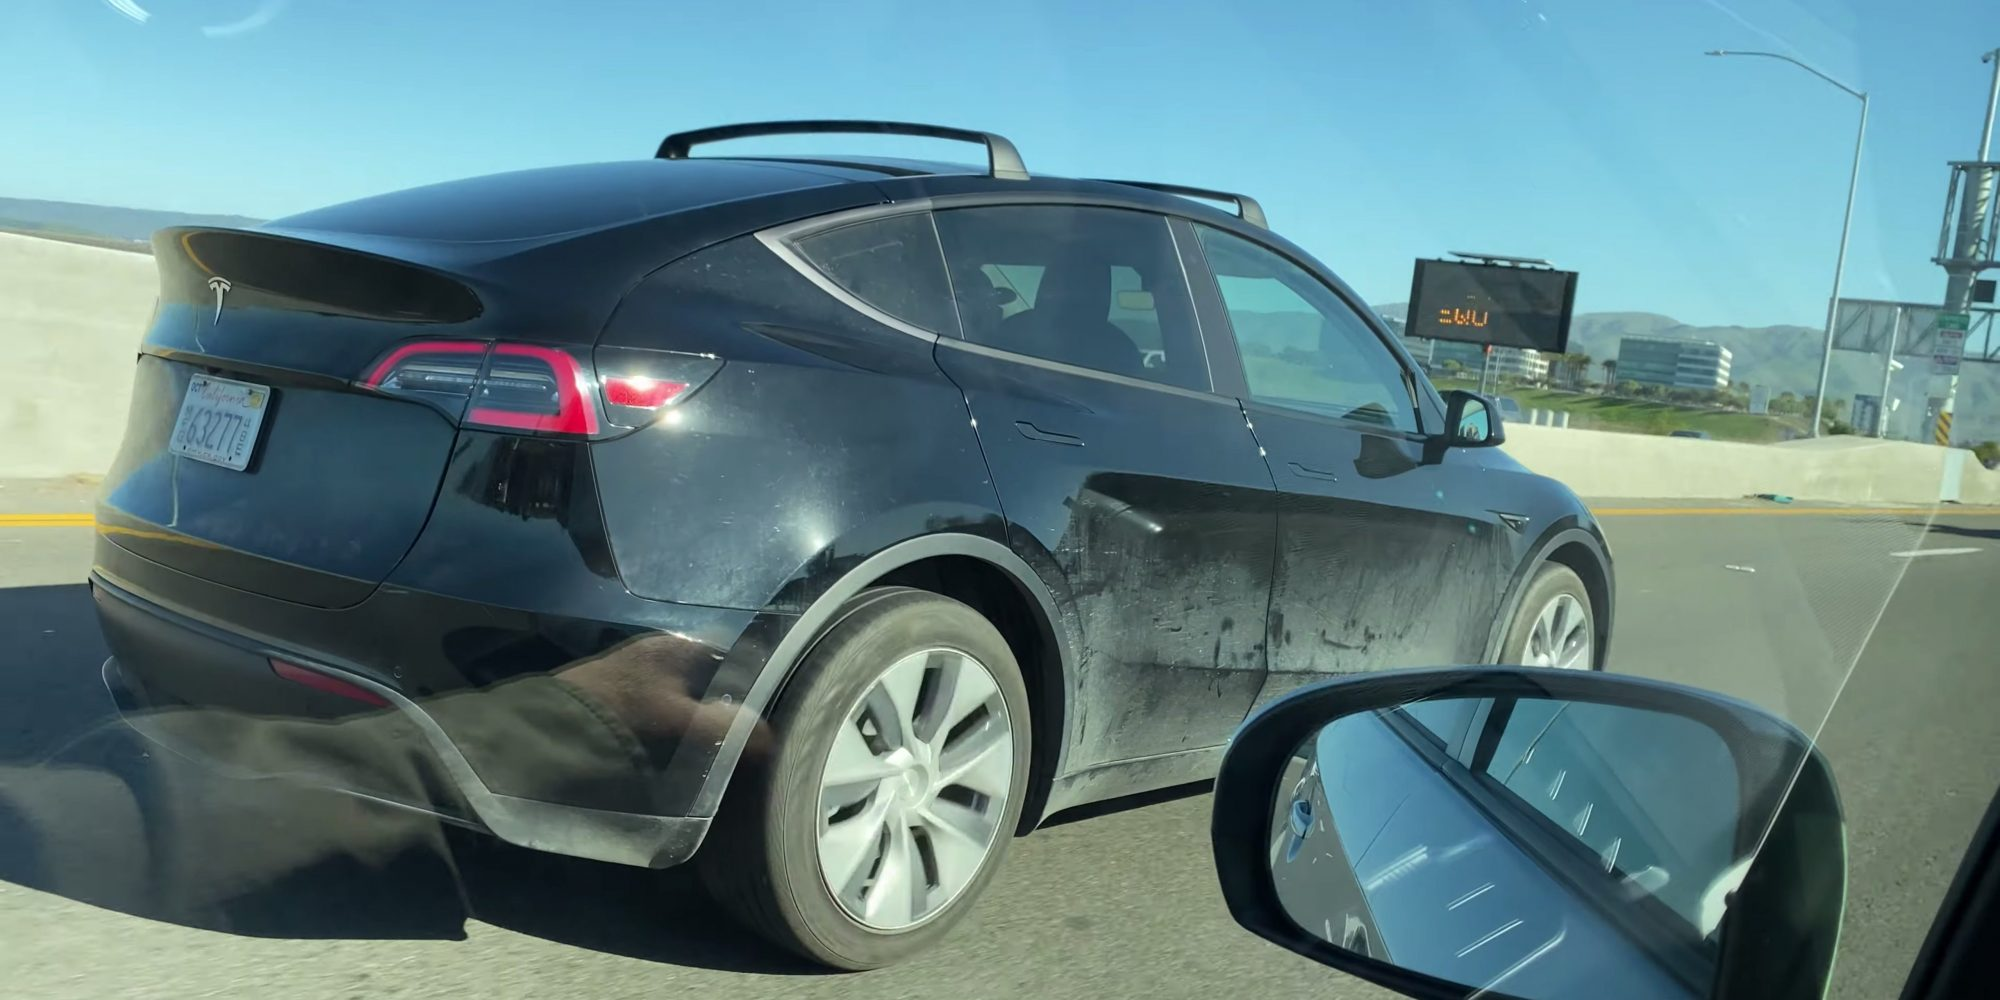 First sighting surfaces of Model Y with roof rack in advance of launch - Electrek